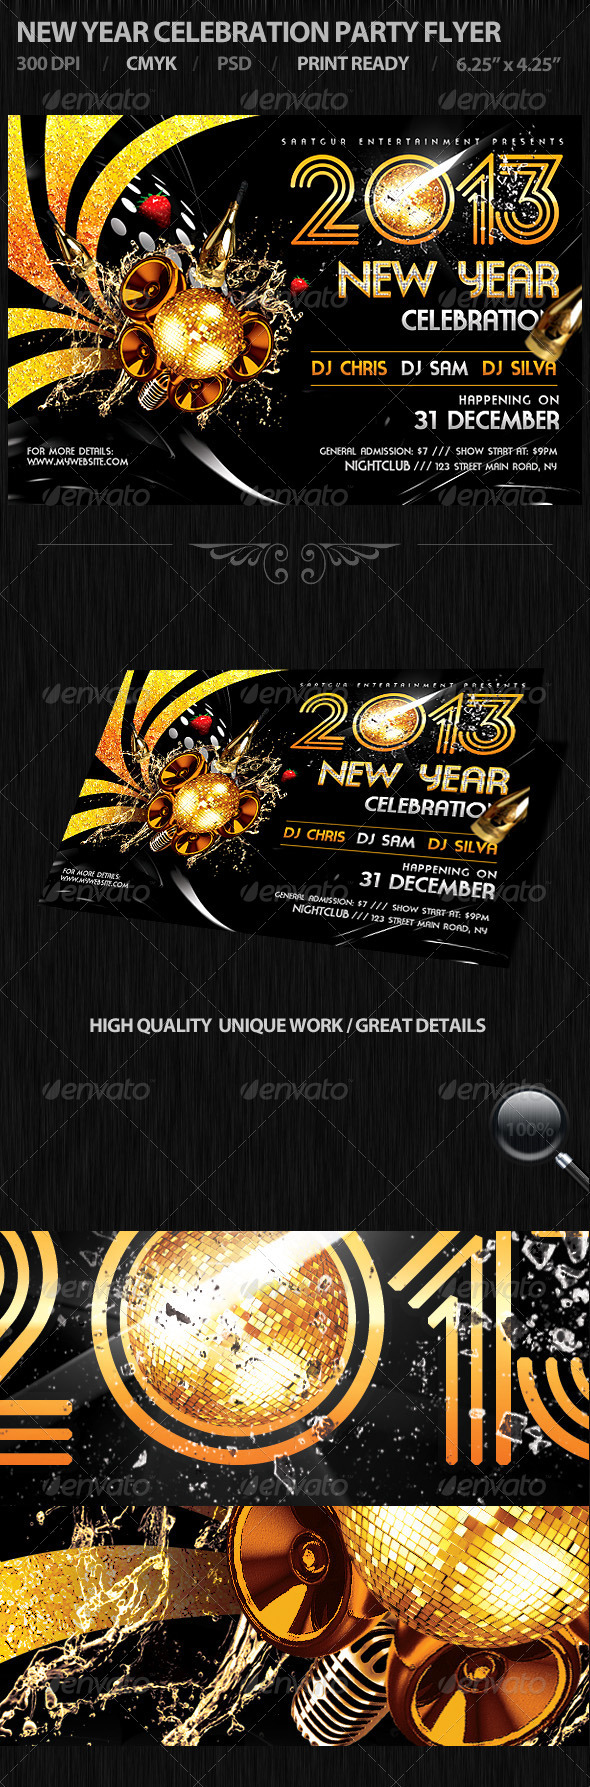 GraphicRiver New Year Celebration Party Flyer 3482782